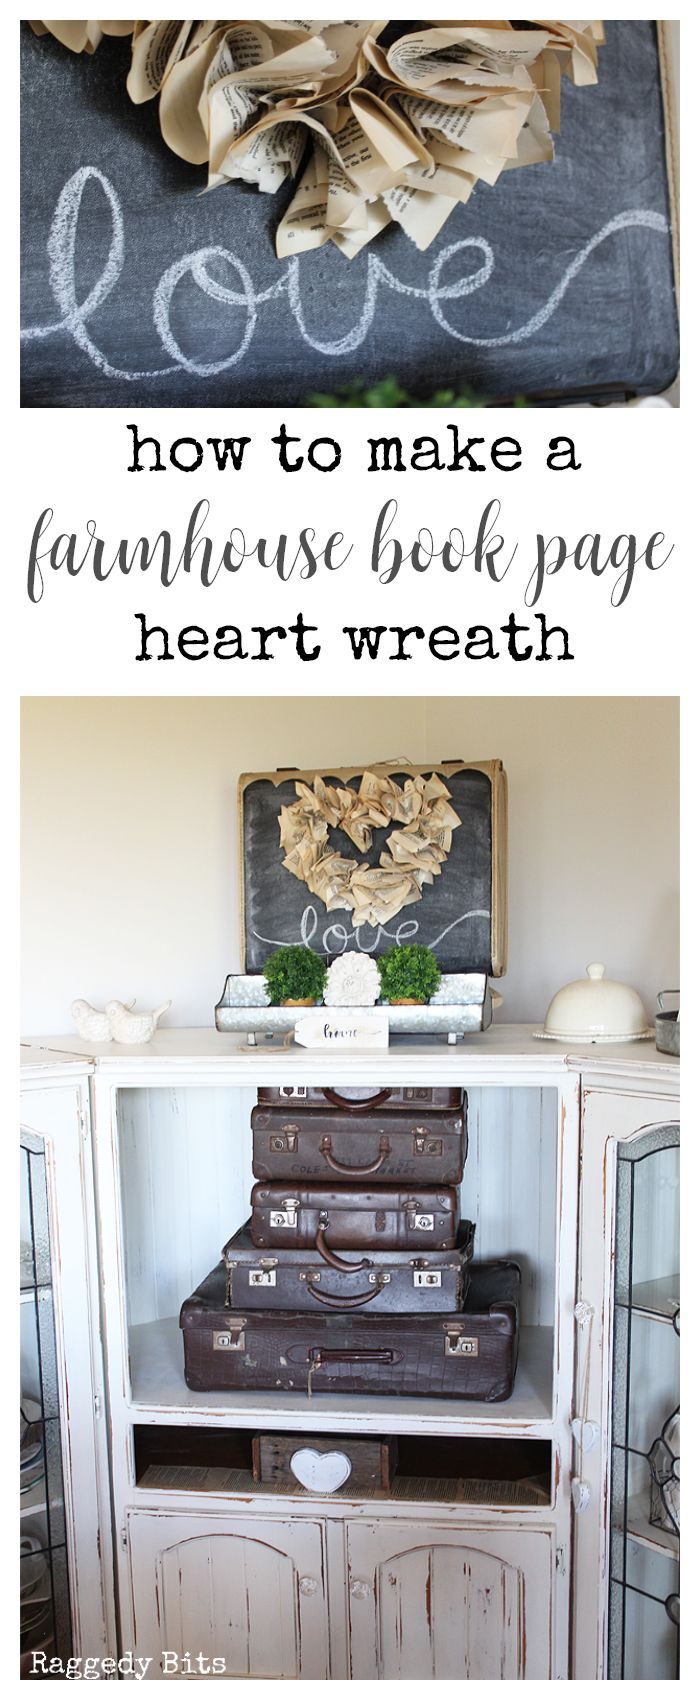 Using some cardboard and old book pages see how to make a fun Farmhouse Book Page Heart Wreath in one afternoon. Full tutorial   www.raggedy-bits.com #farmhouse #bookpage #wreath #craft #DIY #valentines